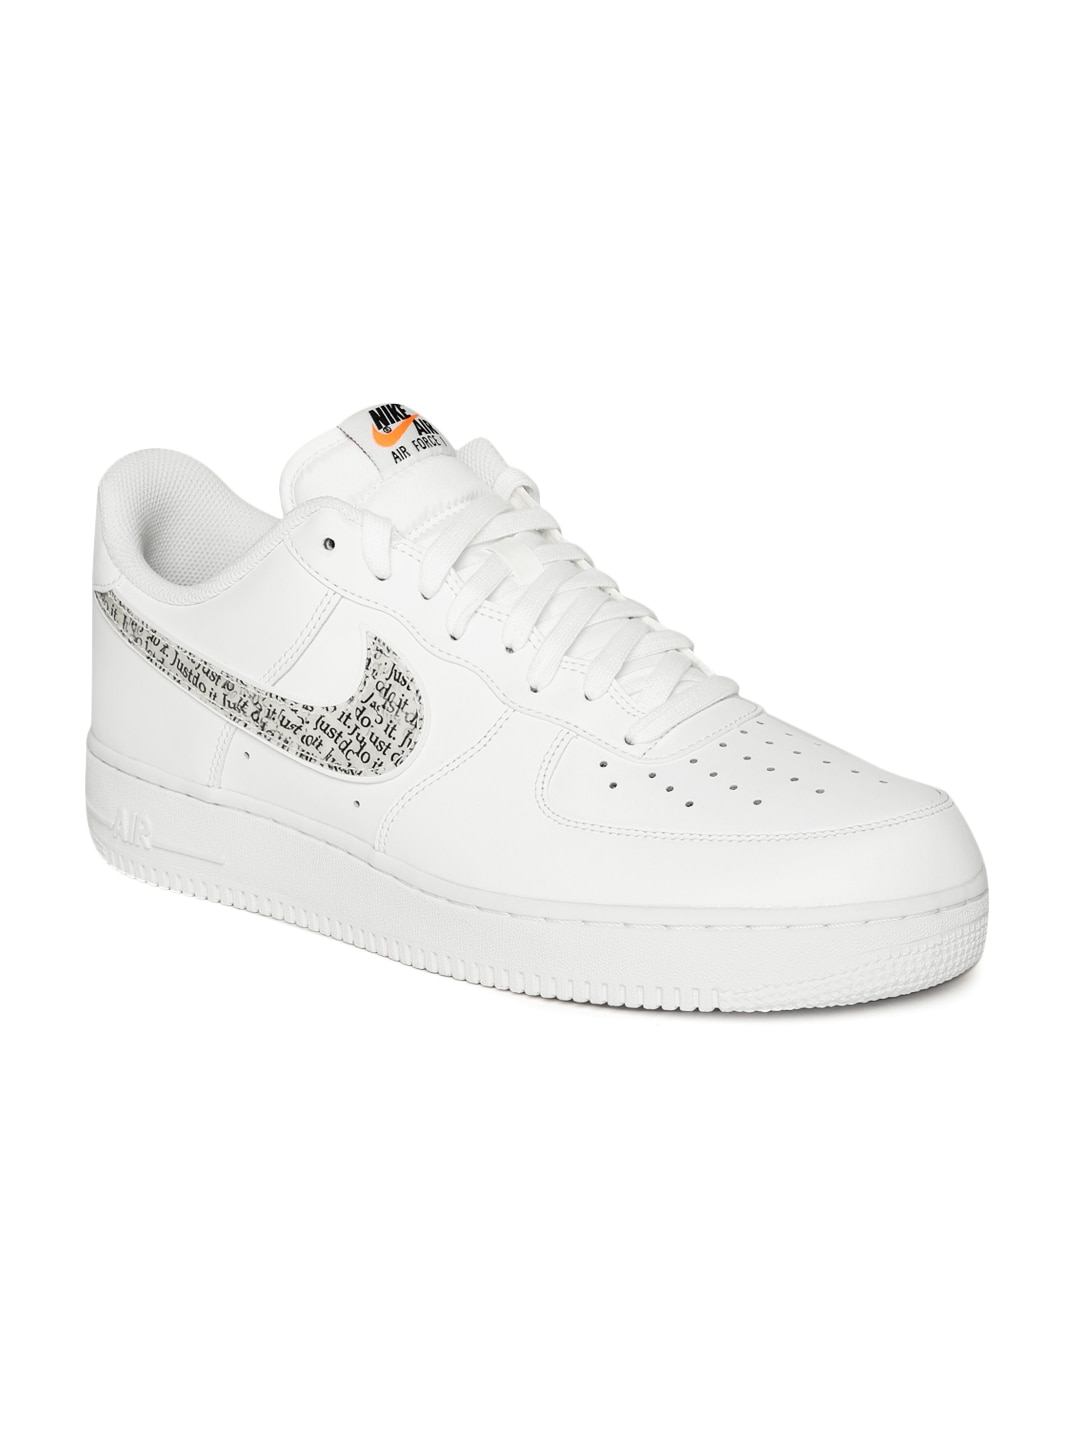 7f9f6bee6a1 Nike Air Force 1 Casual Shoes - Buy Nike Air Force 1 Casual Shoes online in  India